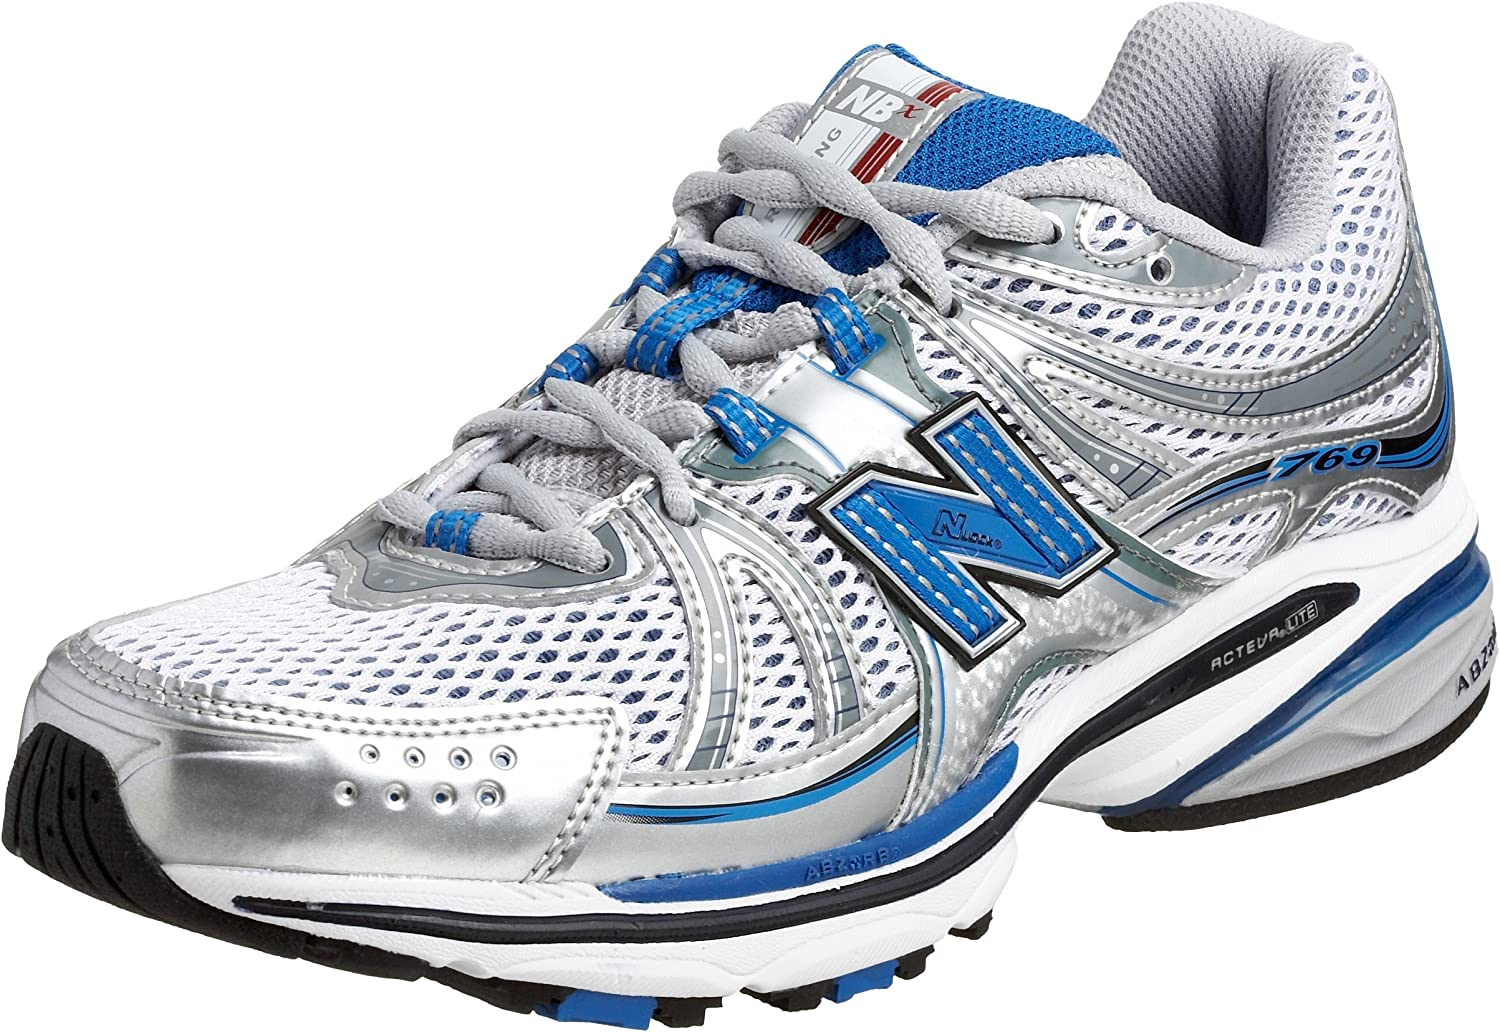 New Balance Men's MR769 NBx Stability Running shoes